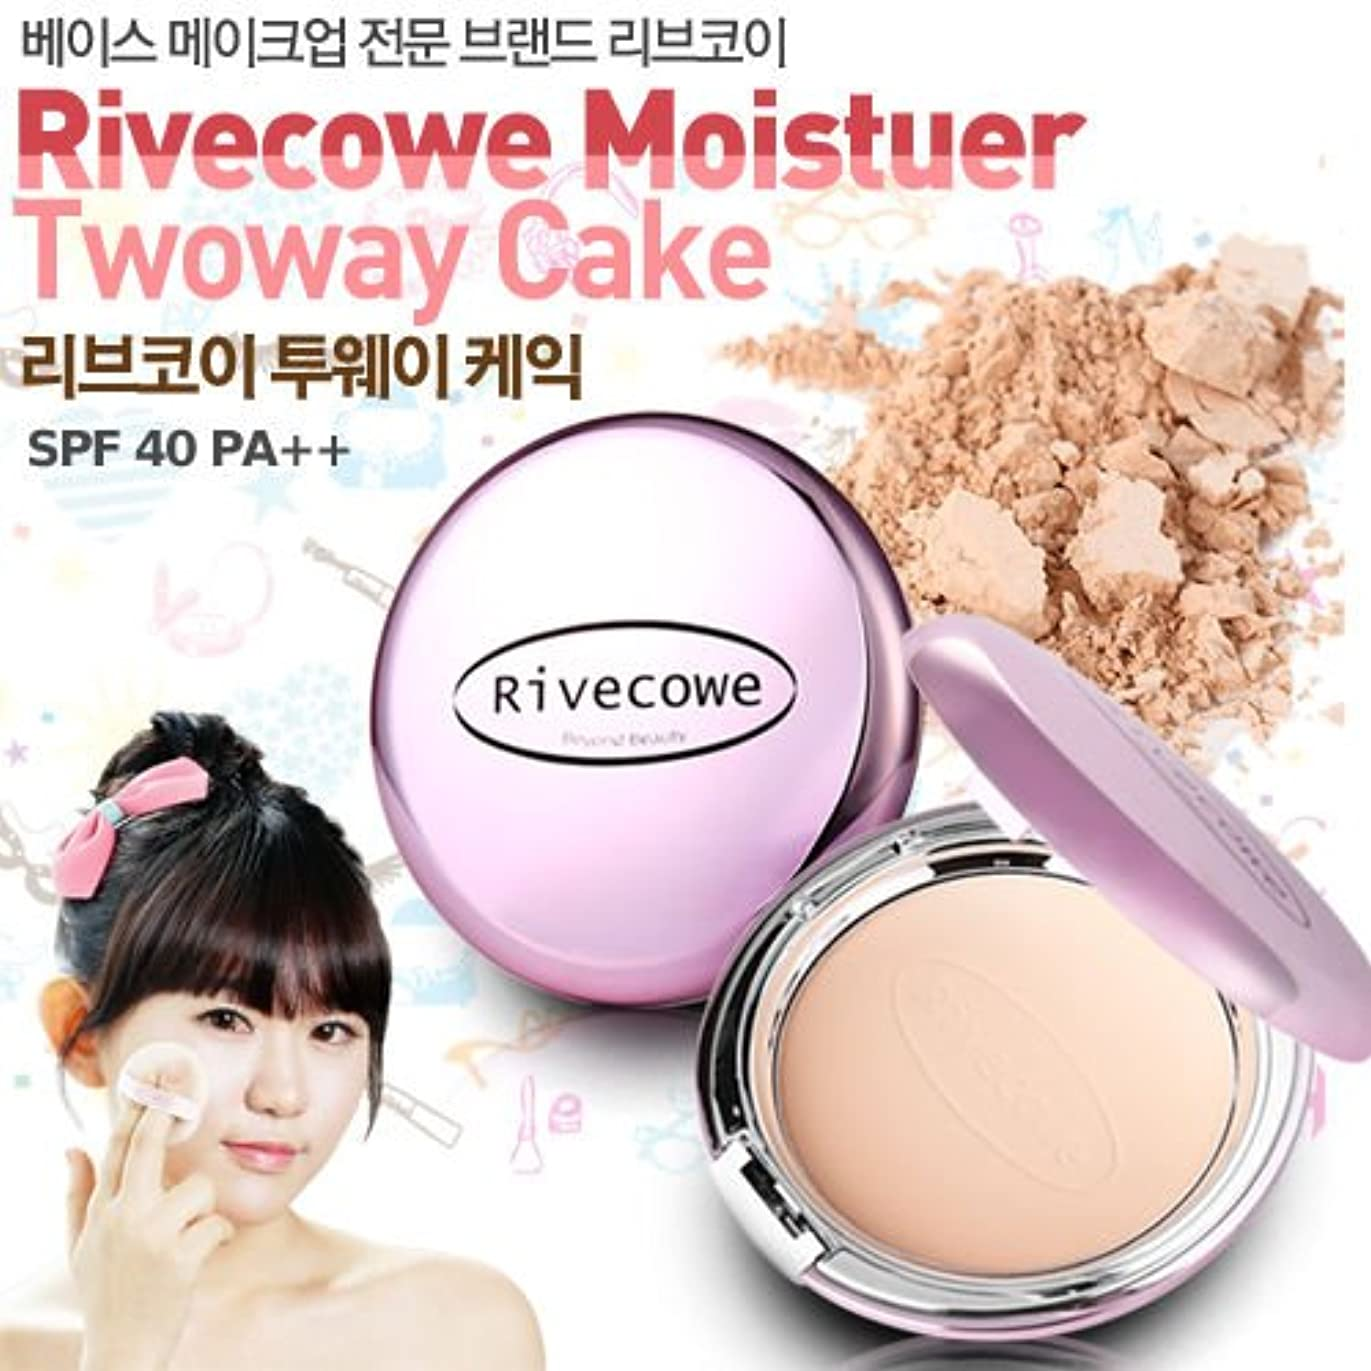 レースケイ素スリッパRivecowe Moisture Twoway Cake (Foundation + Powder) SPF40PA++ 12g (No. 21 Natural Beige) [並行輸入品]